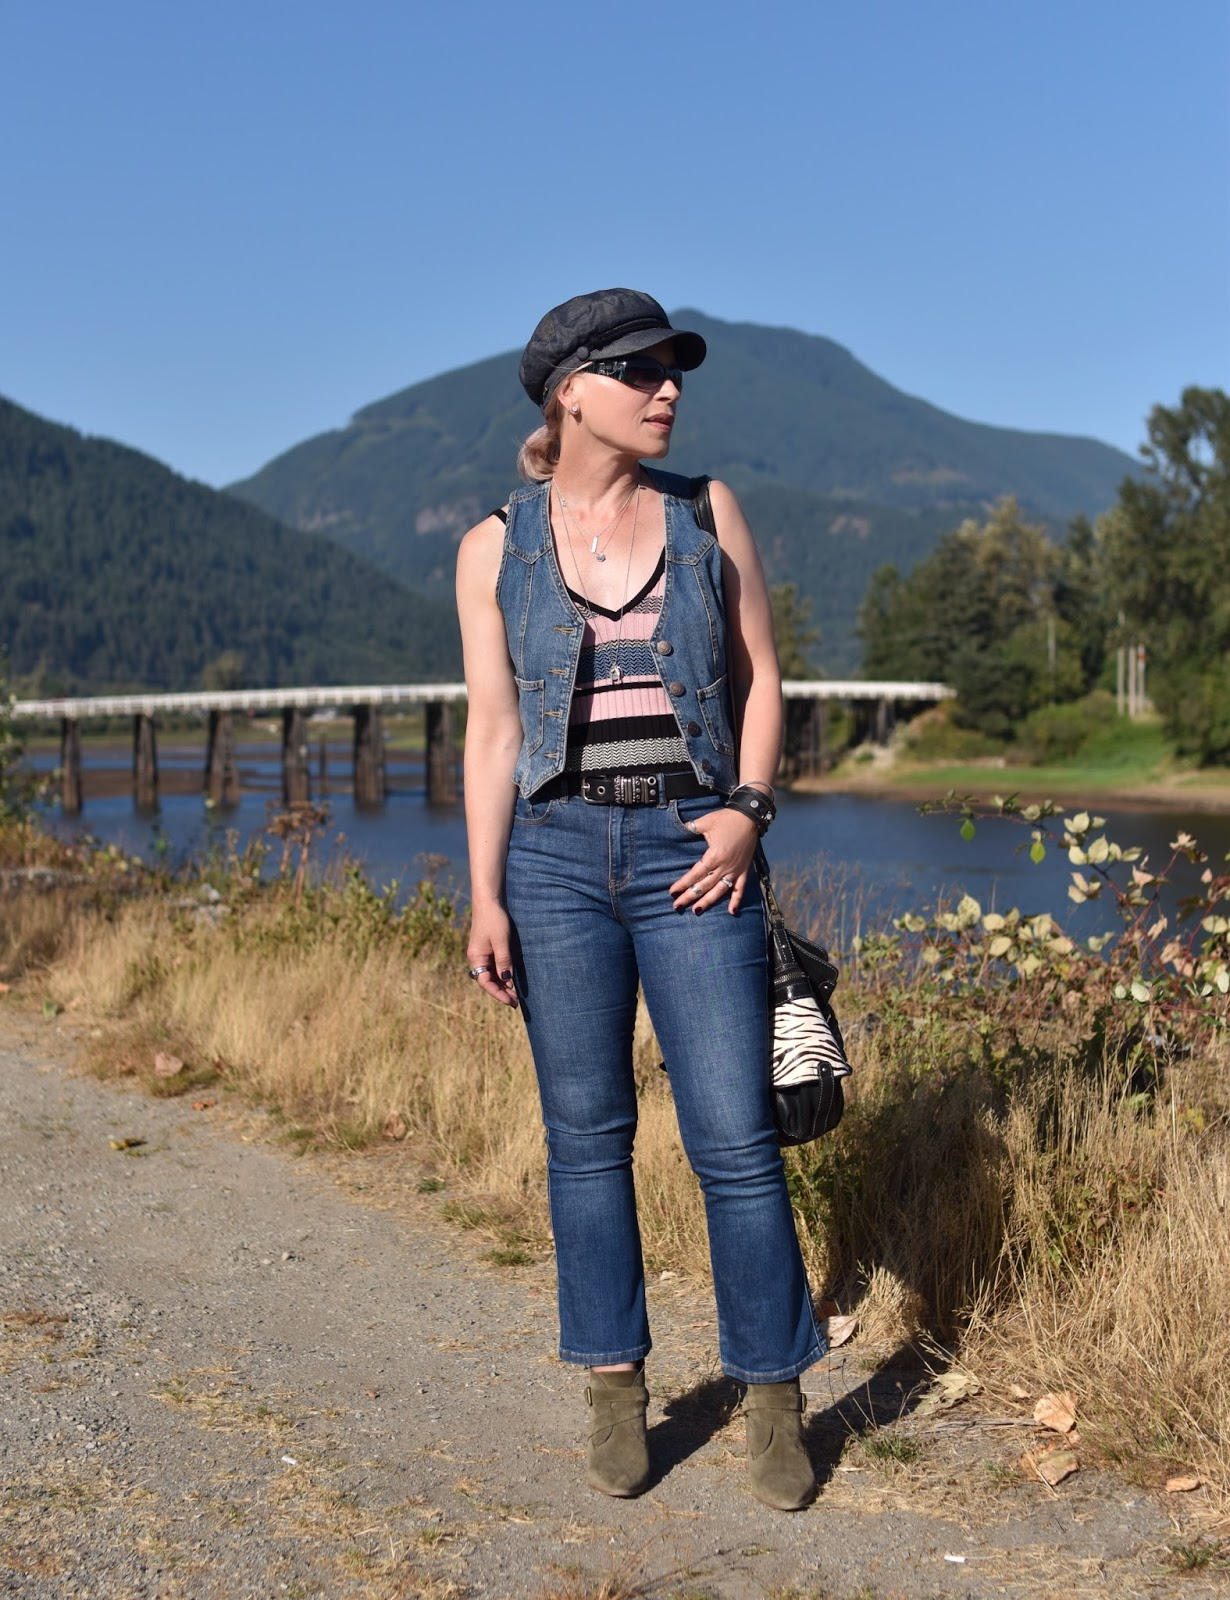 Monika Faulkner outfit inspiration - cropped flare jeans, striped tank top, denim vest, ankle boots, and a baker boy cap